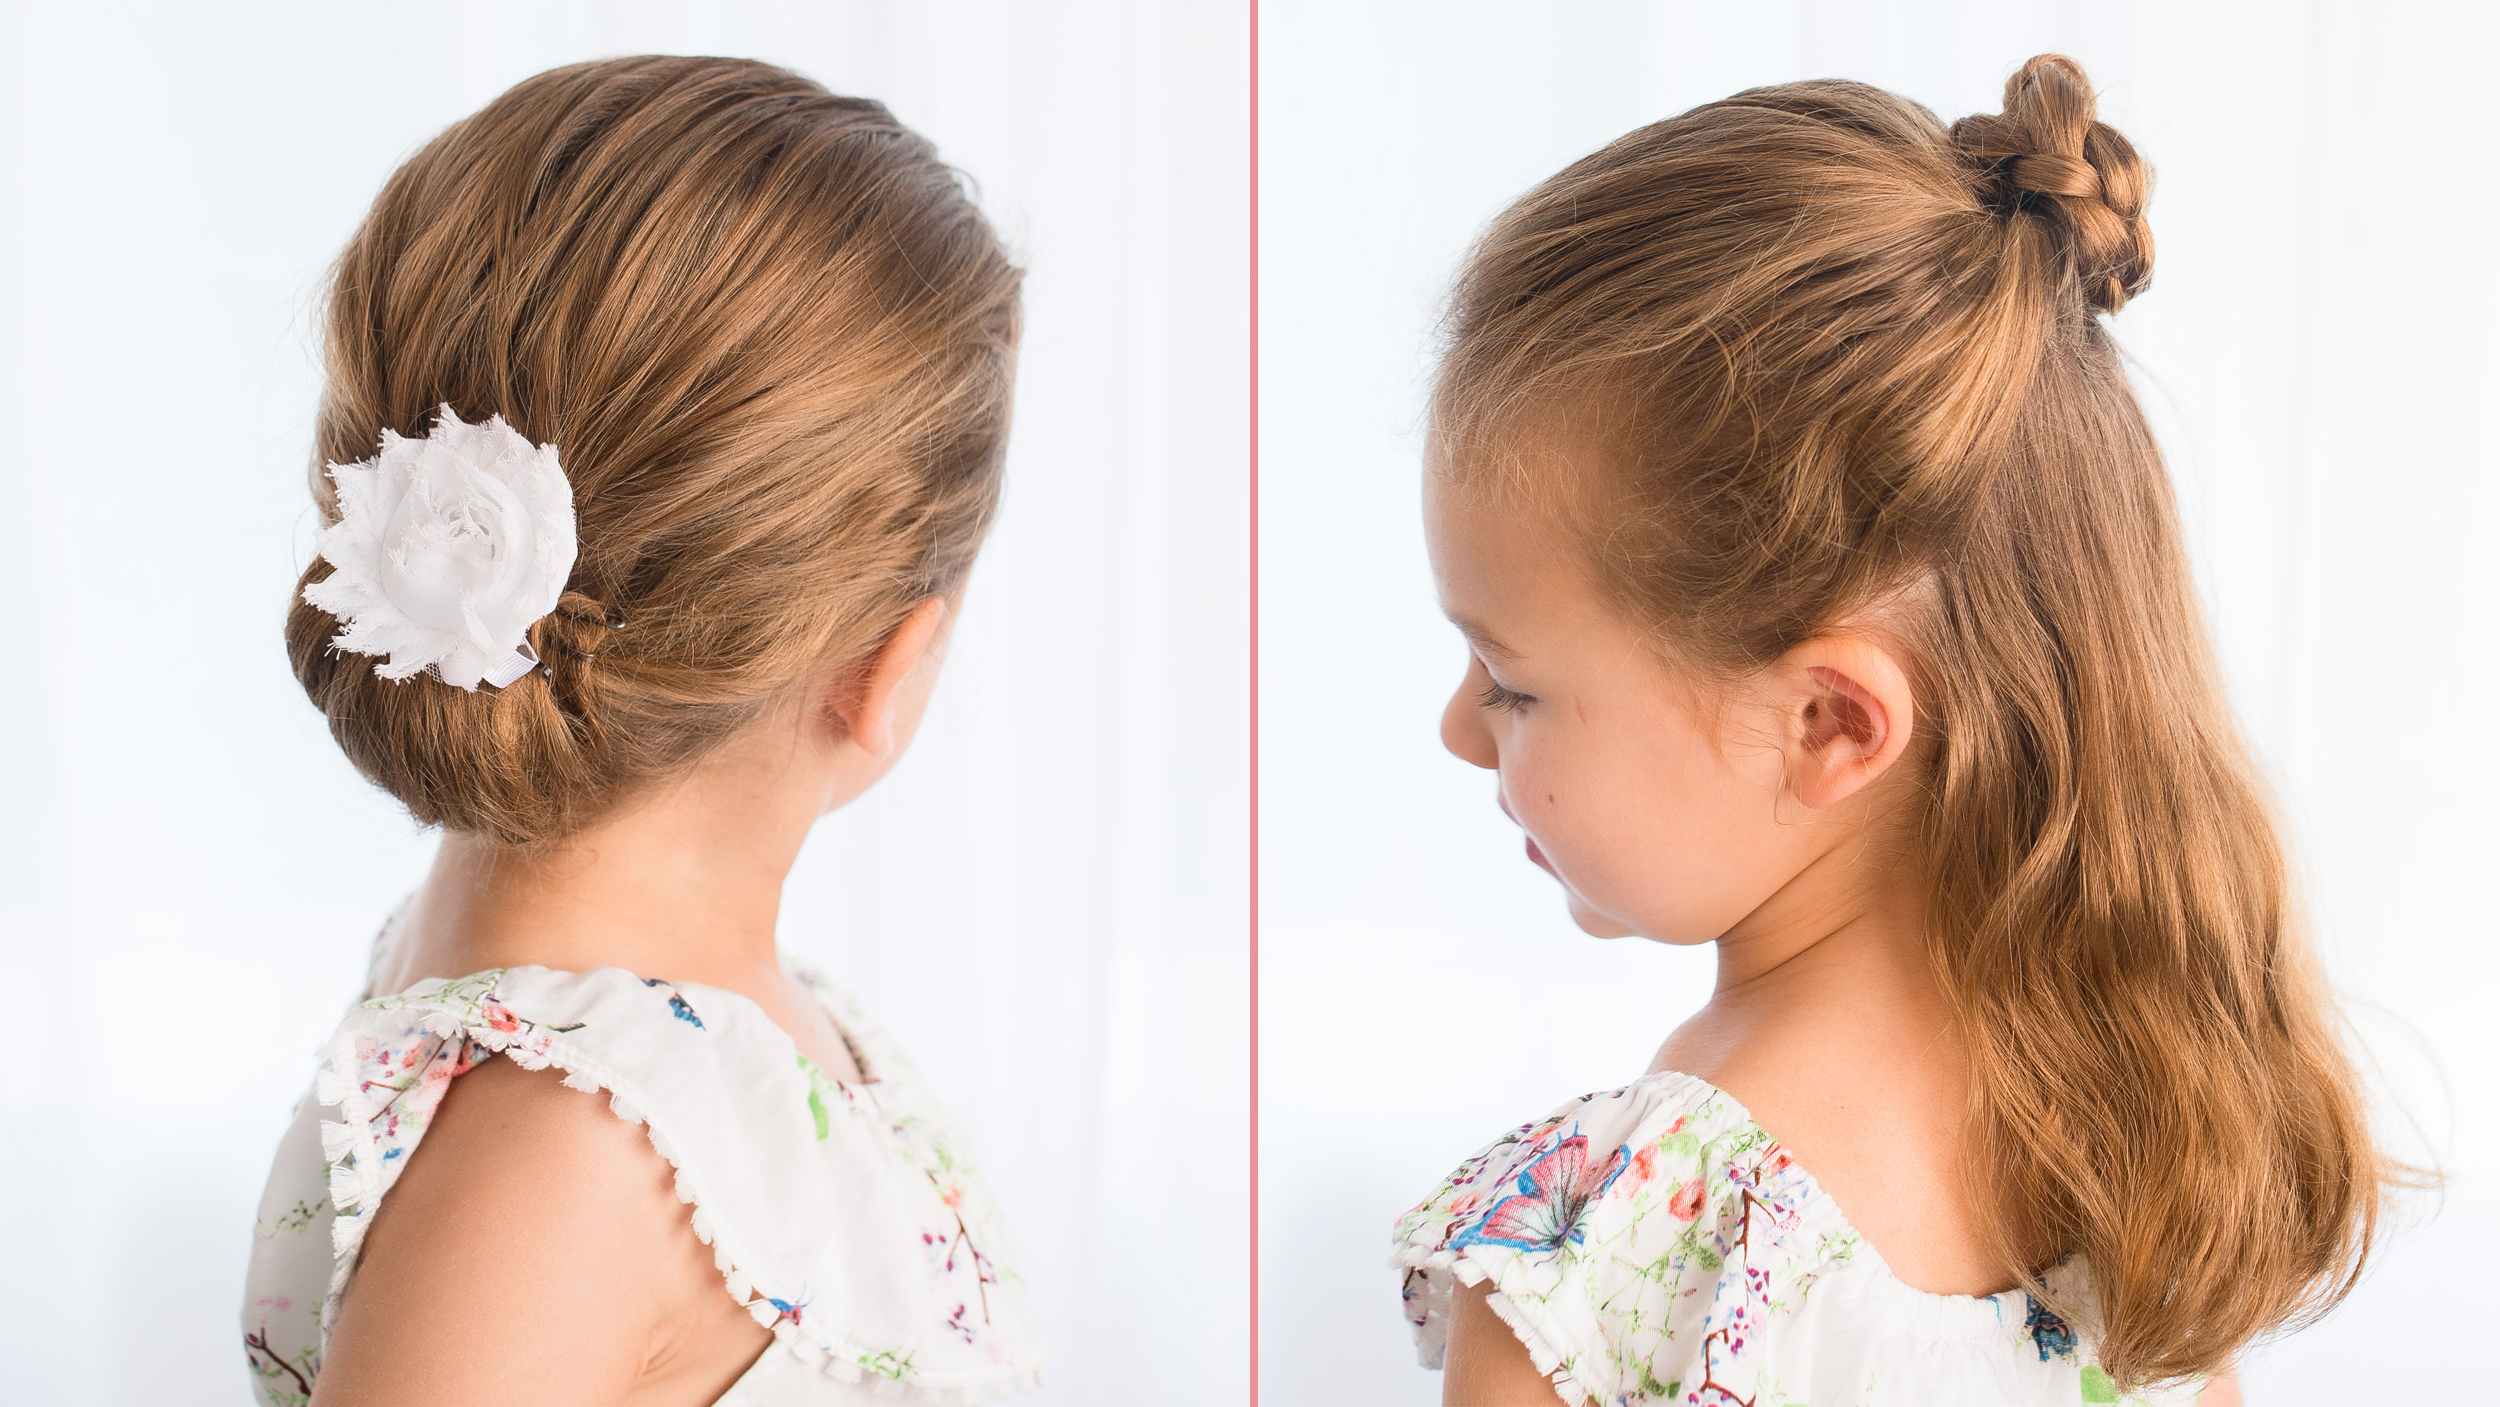 Astonishing Easy Hairstyles For Girls That You Can Create In Minutes Today Com Hairstyle Inspiration Daily Dogsangcom